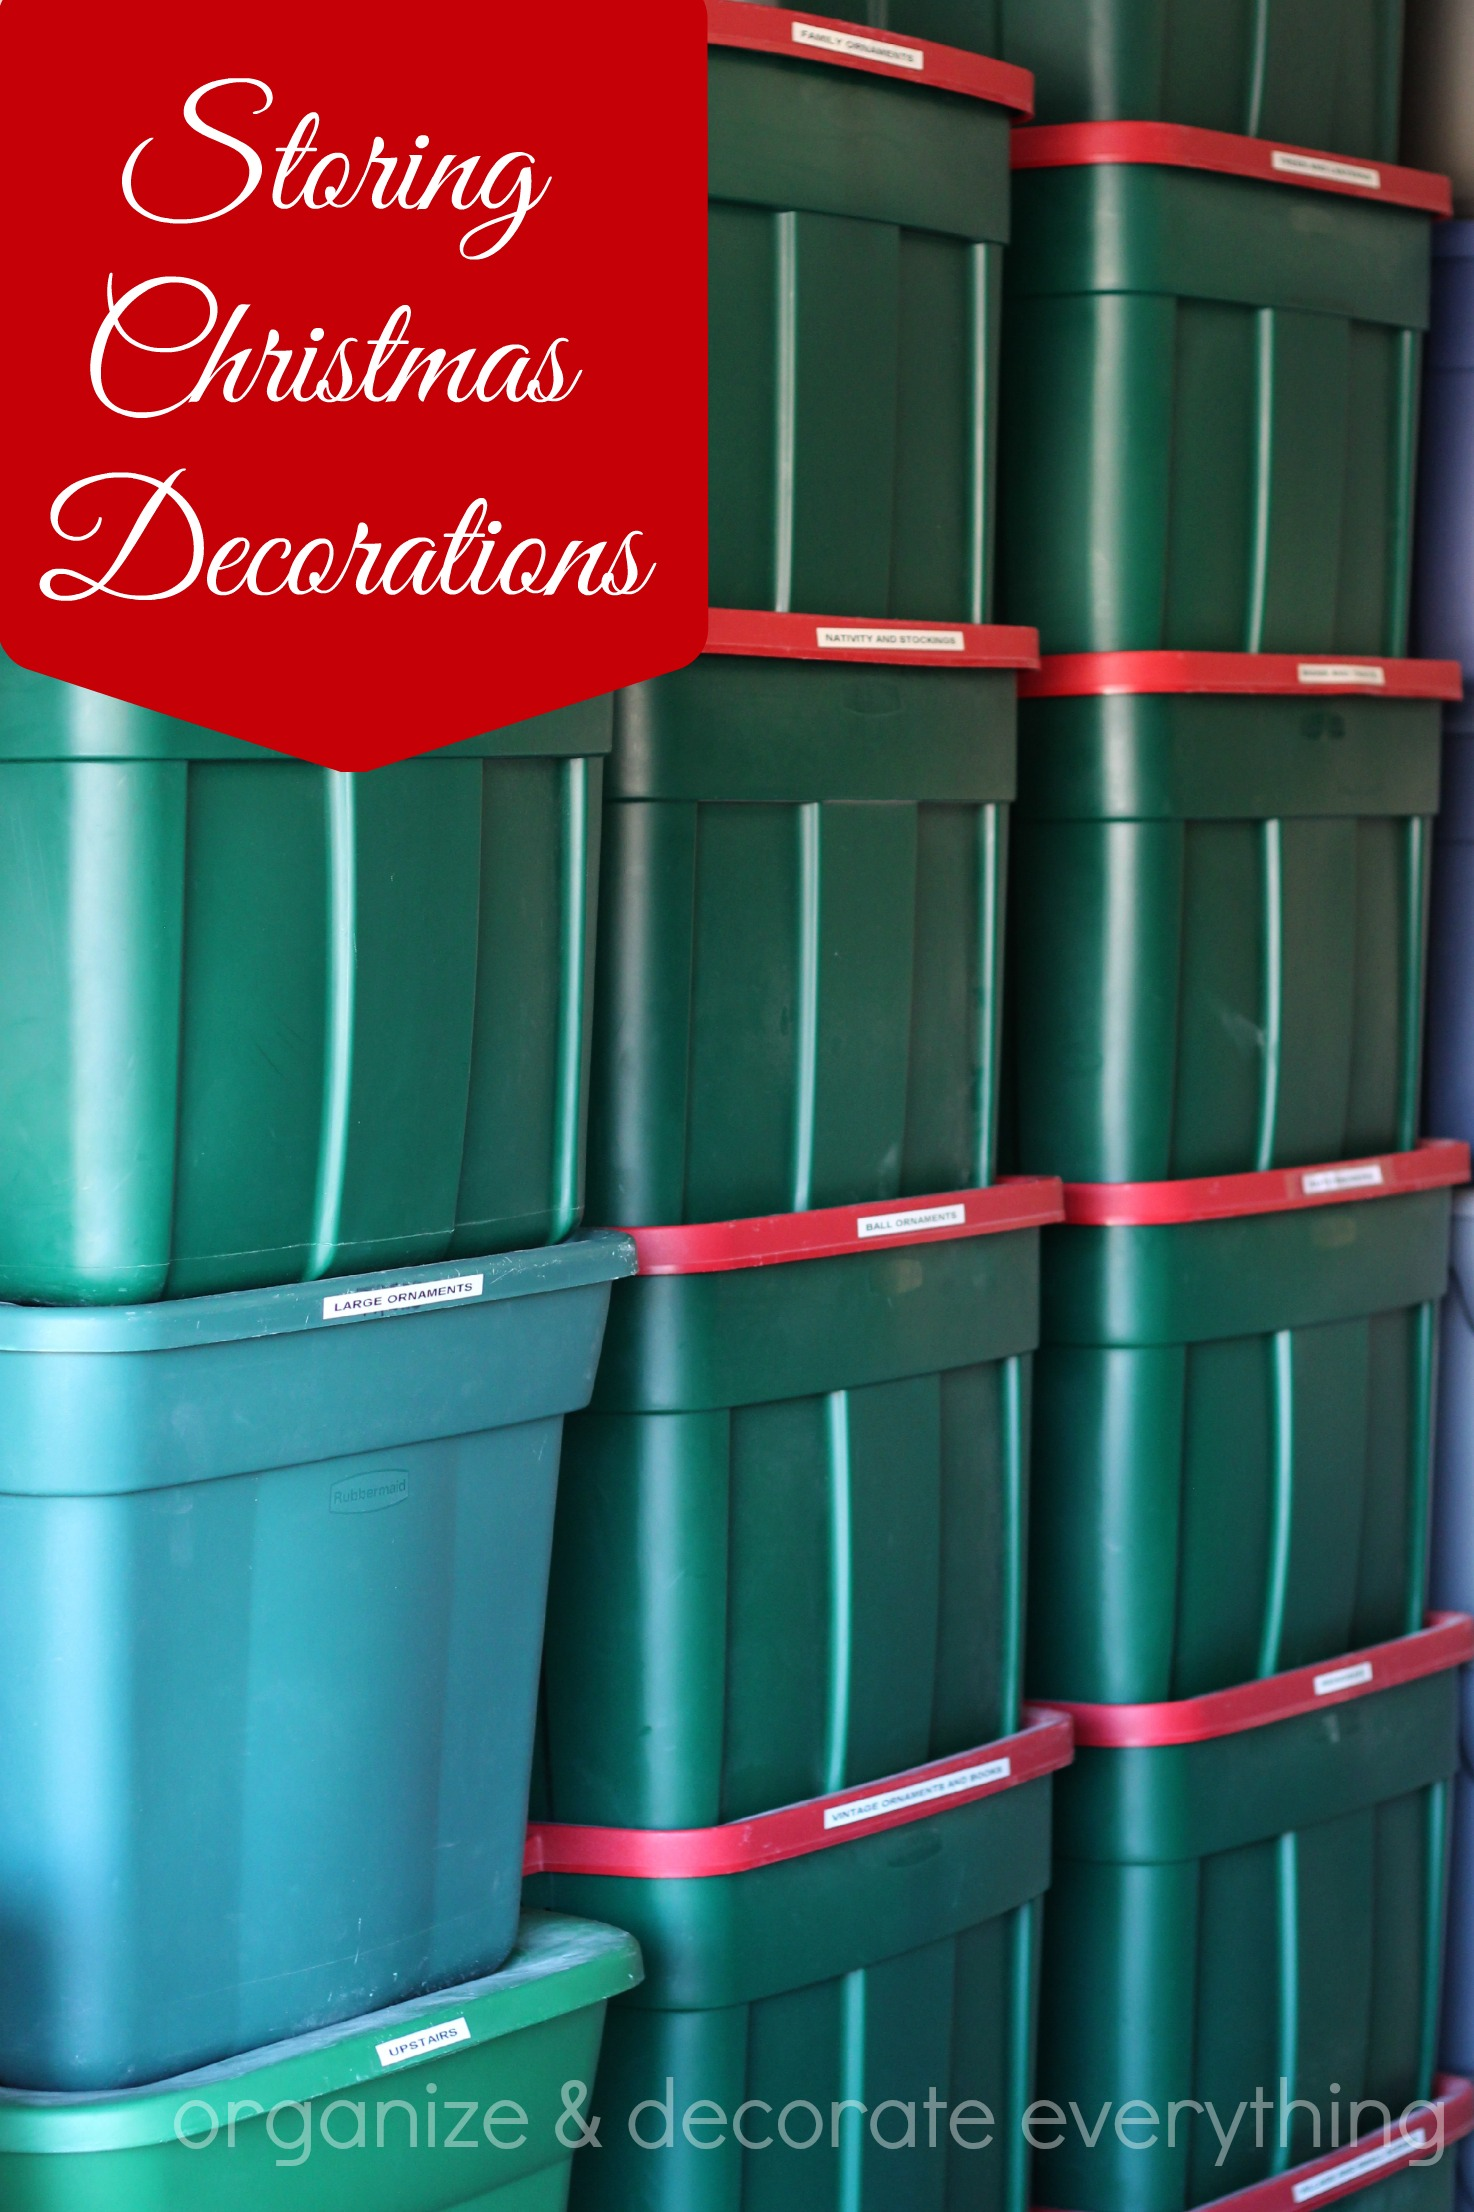 storing christmas decorations - Organizing Christmas Decorations